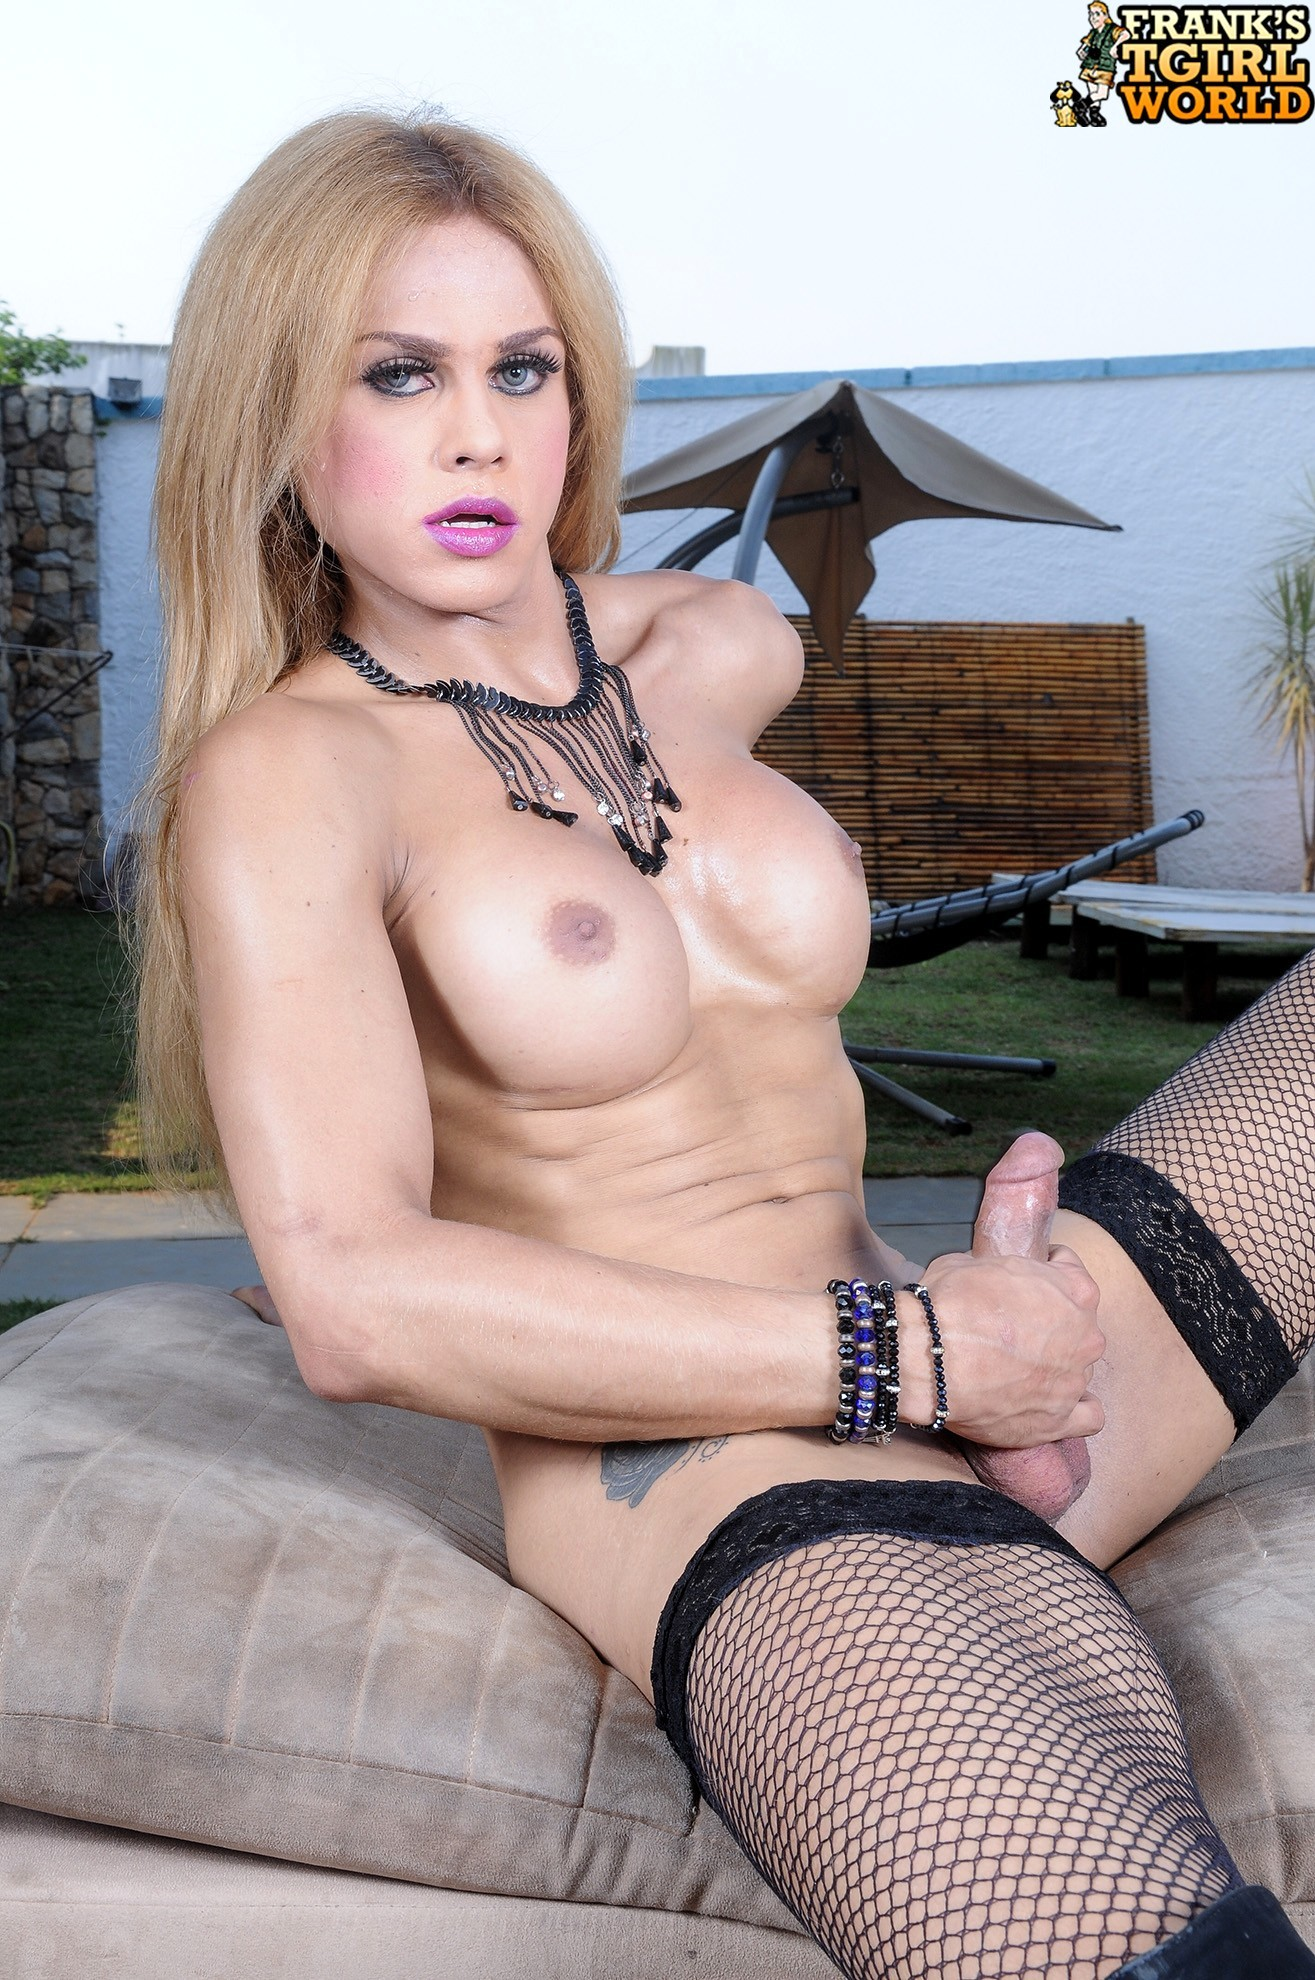 Blonde Tgirl Is Horny And Provocative